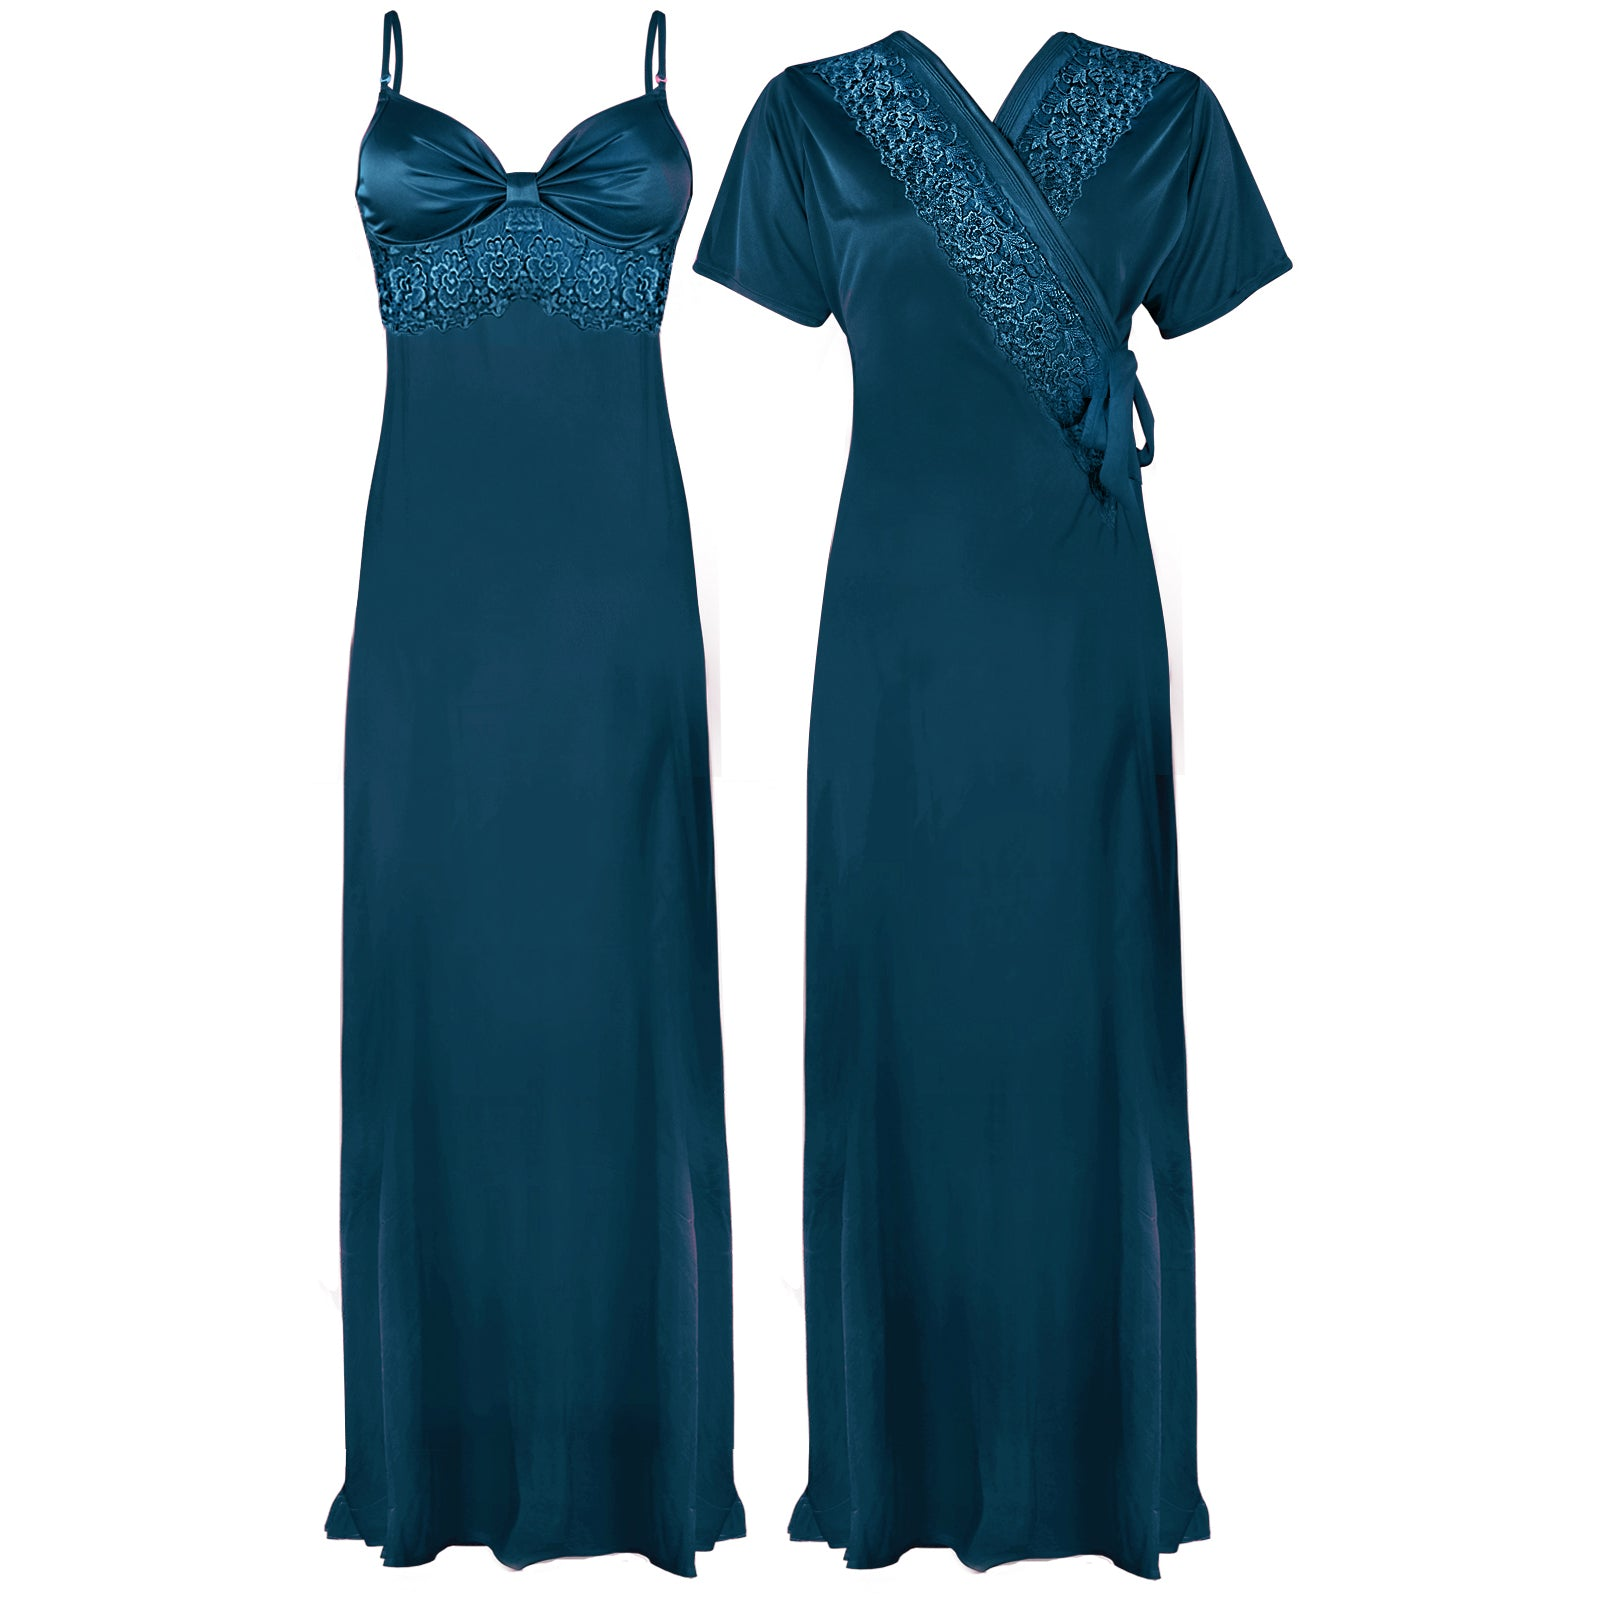 Colour: Teal 2 Pcs Strappy Lace Long Nighty With Robe Size: One Size